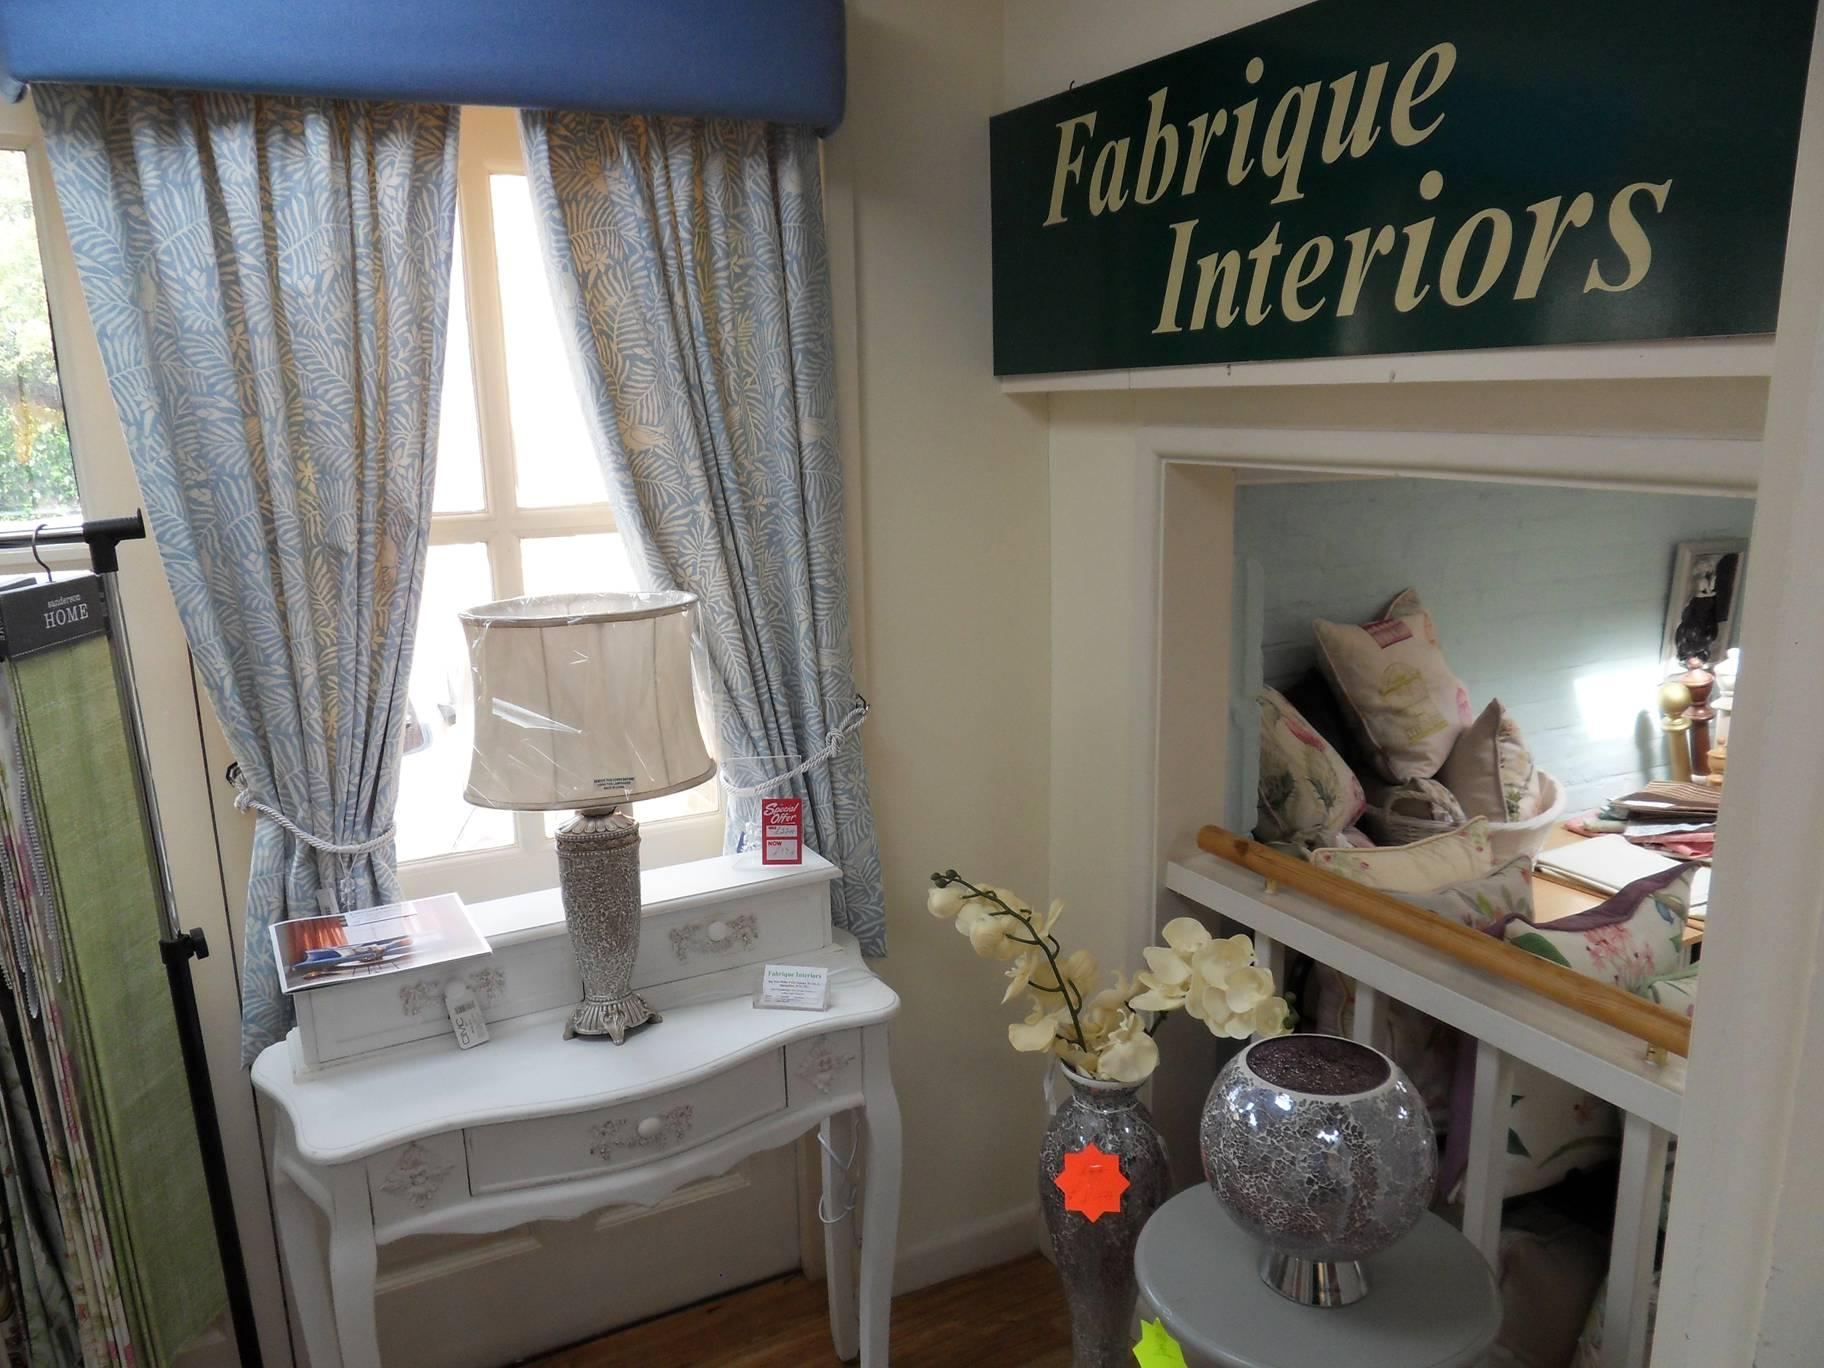 Fabrique Interiors